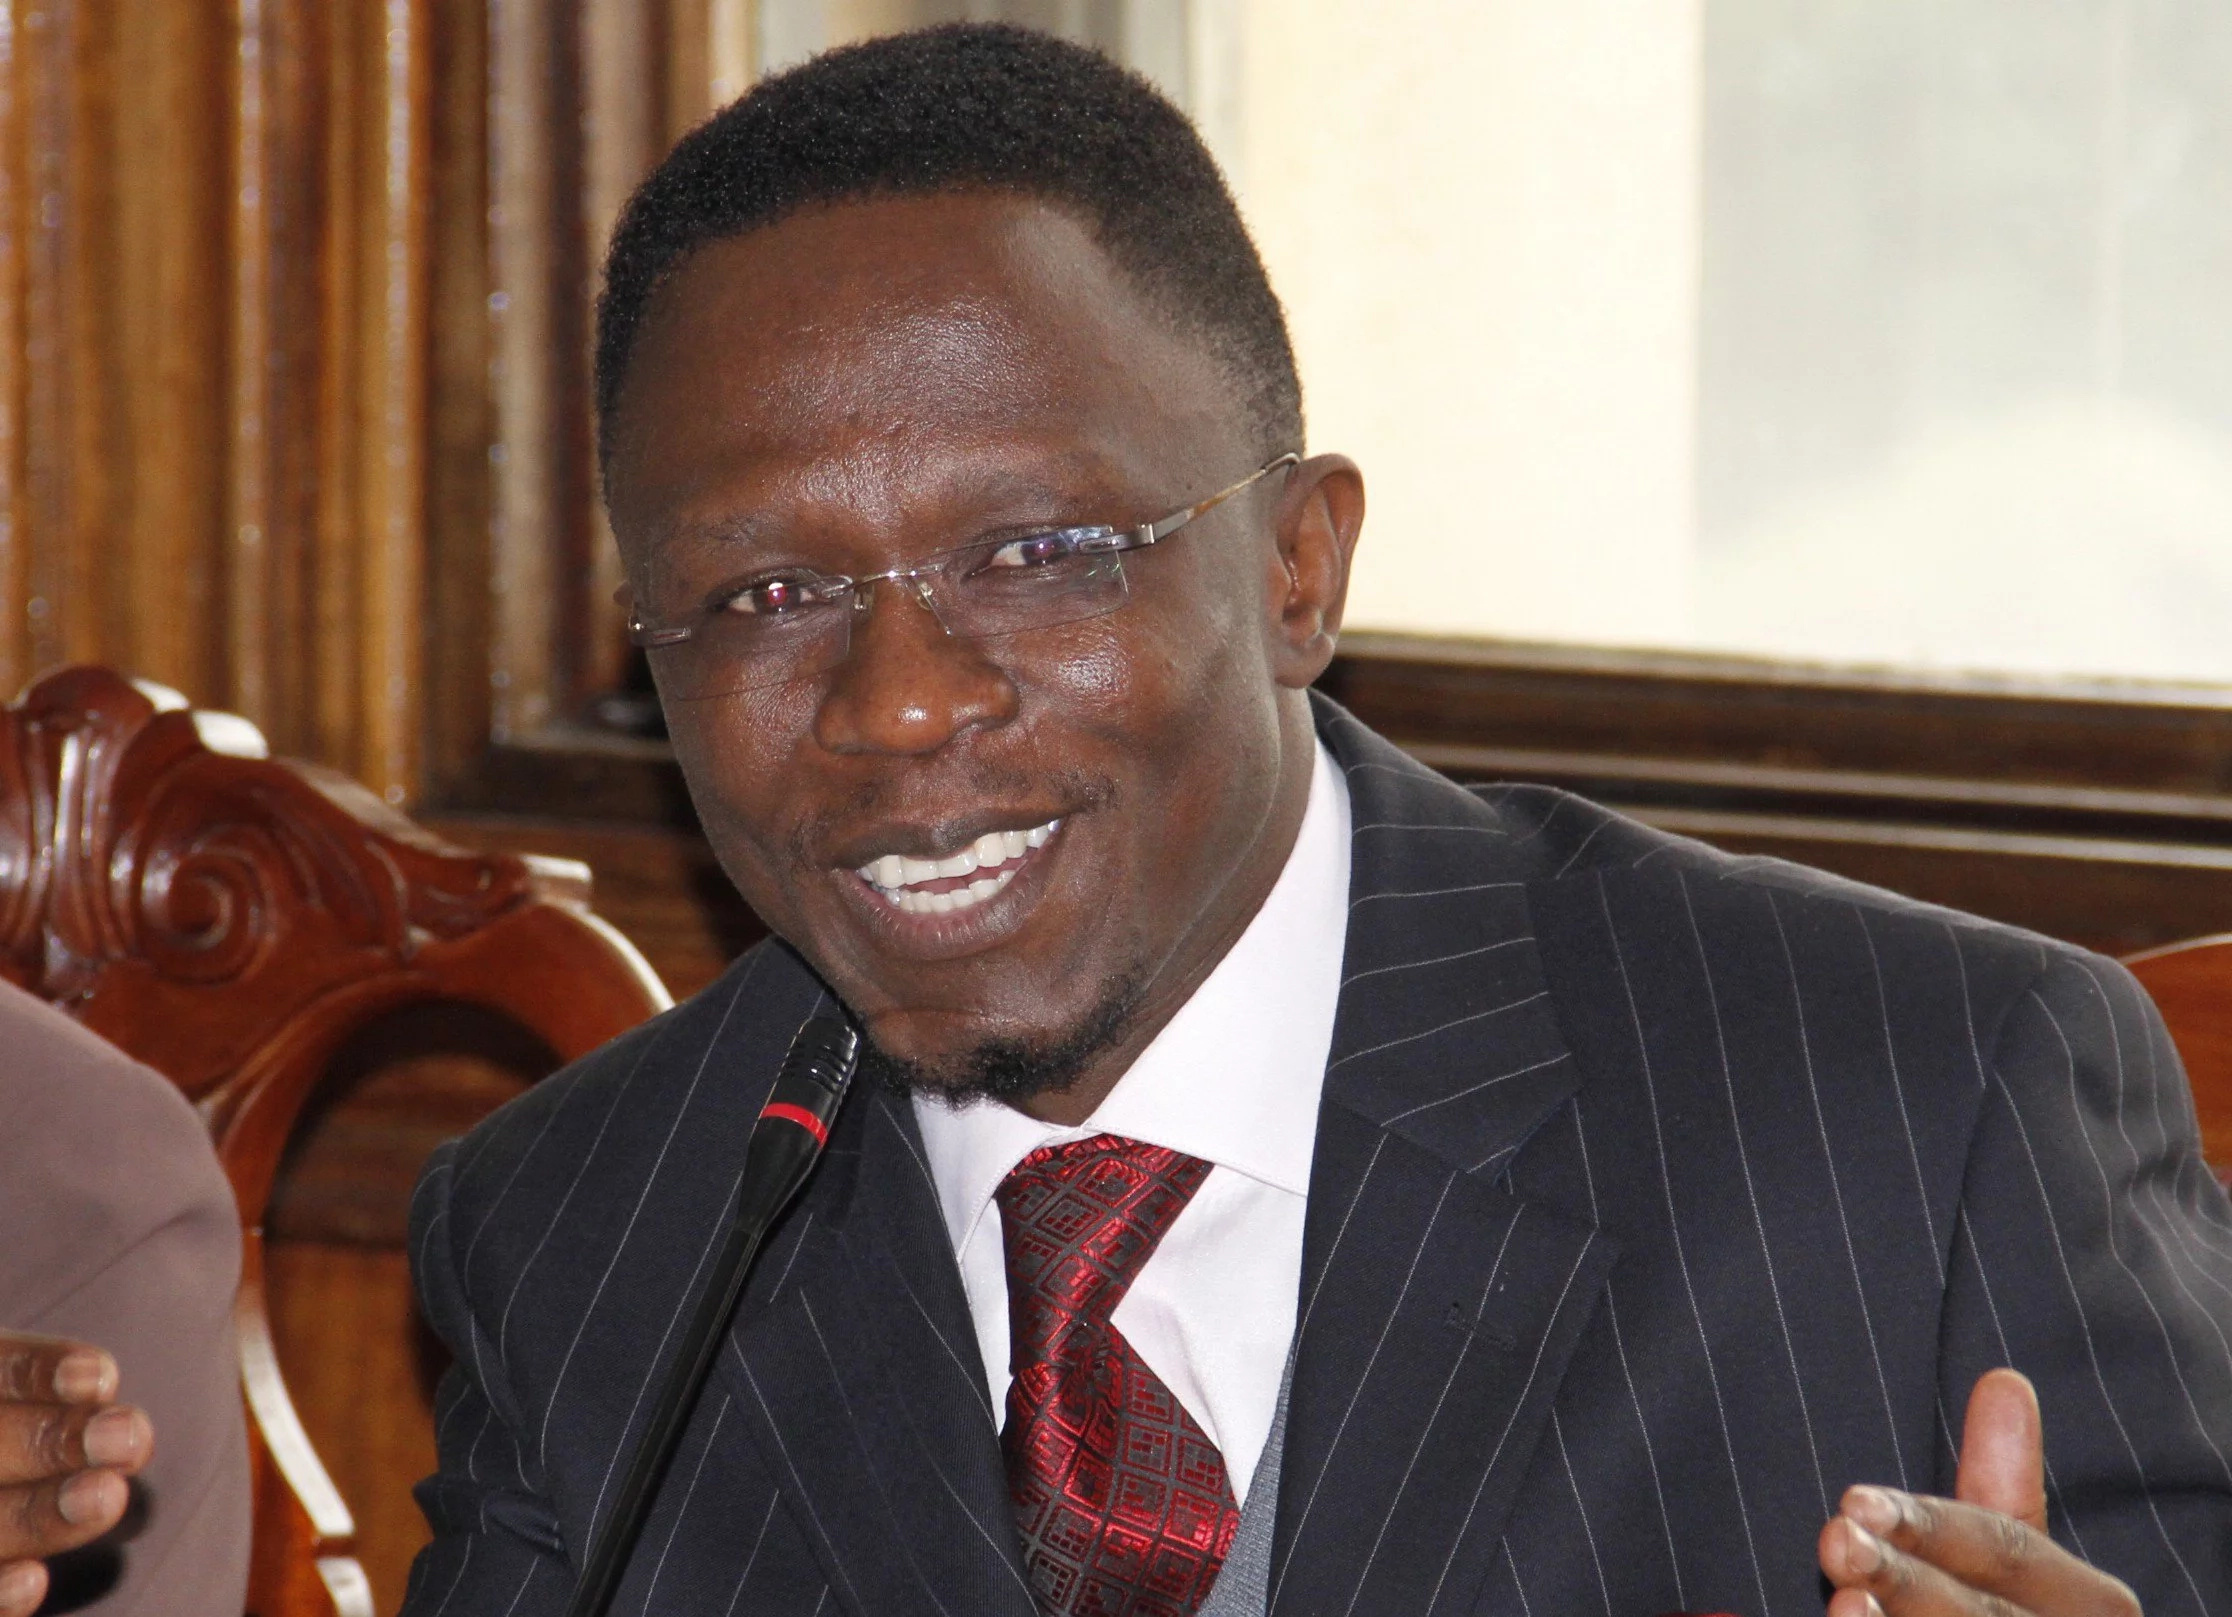 Ababu tears Raila apart again